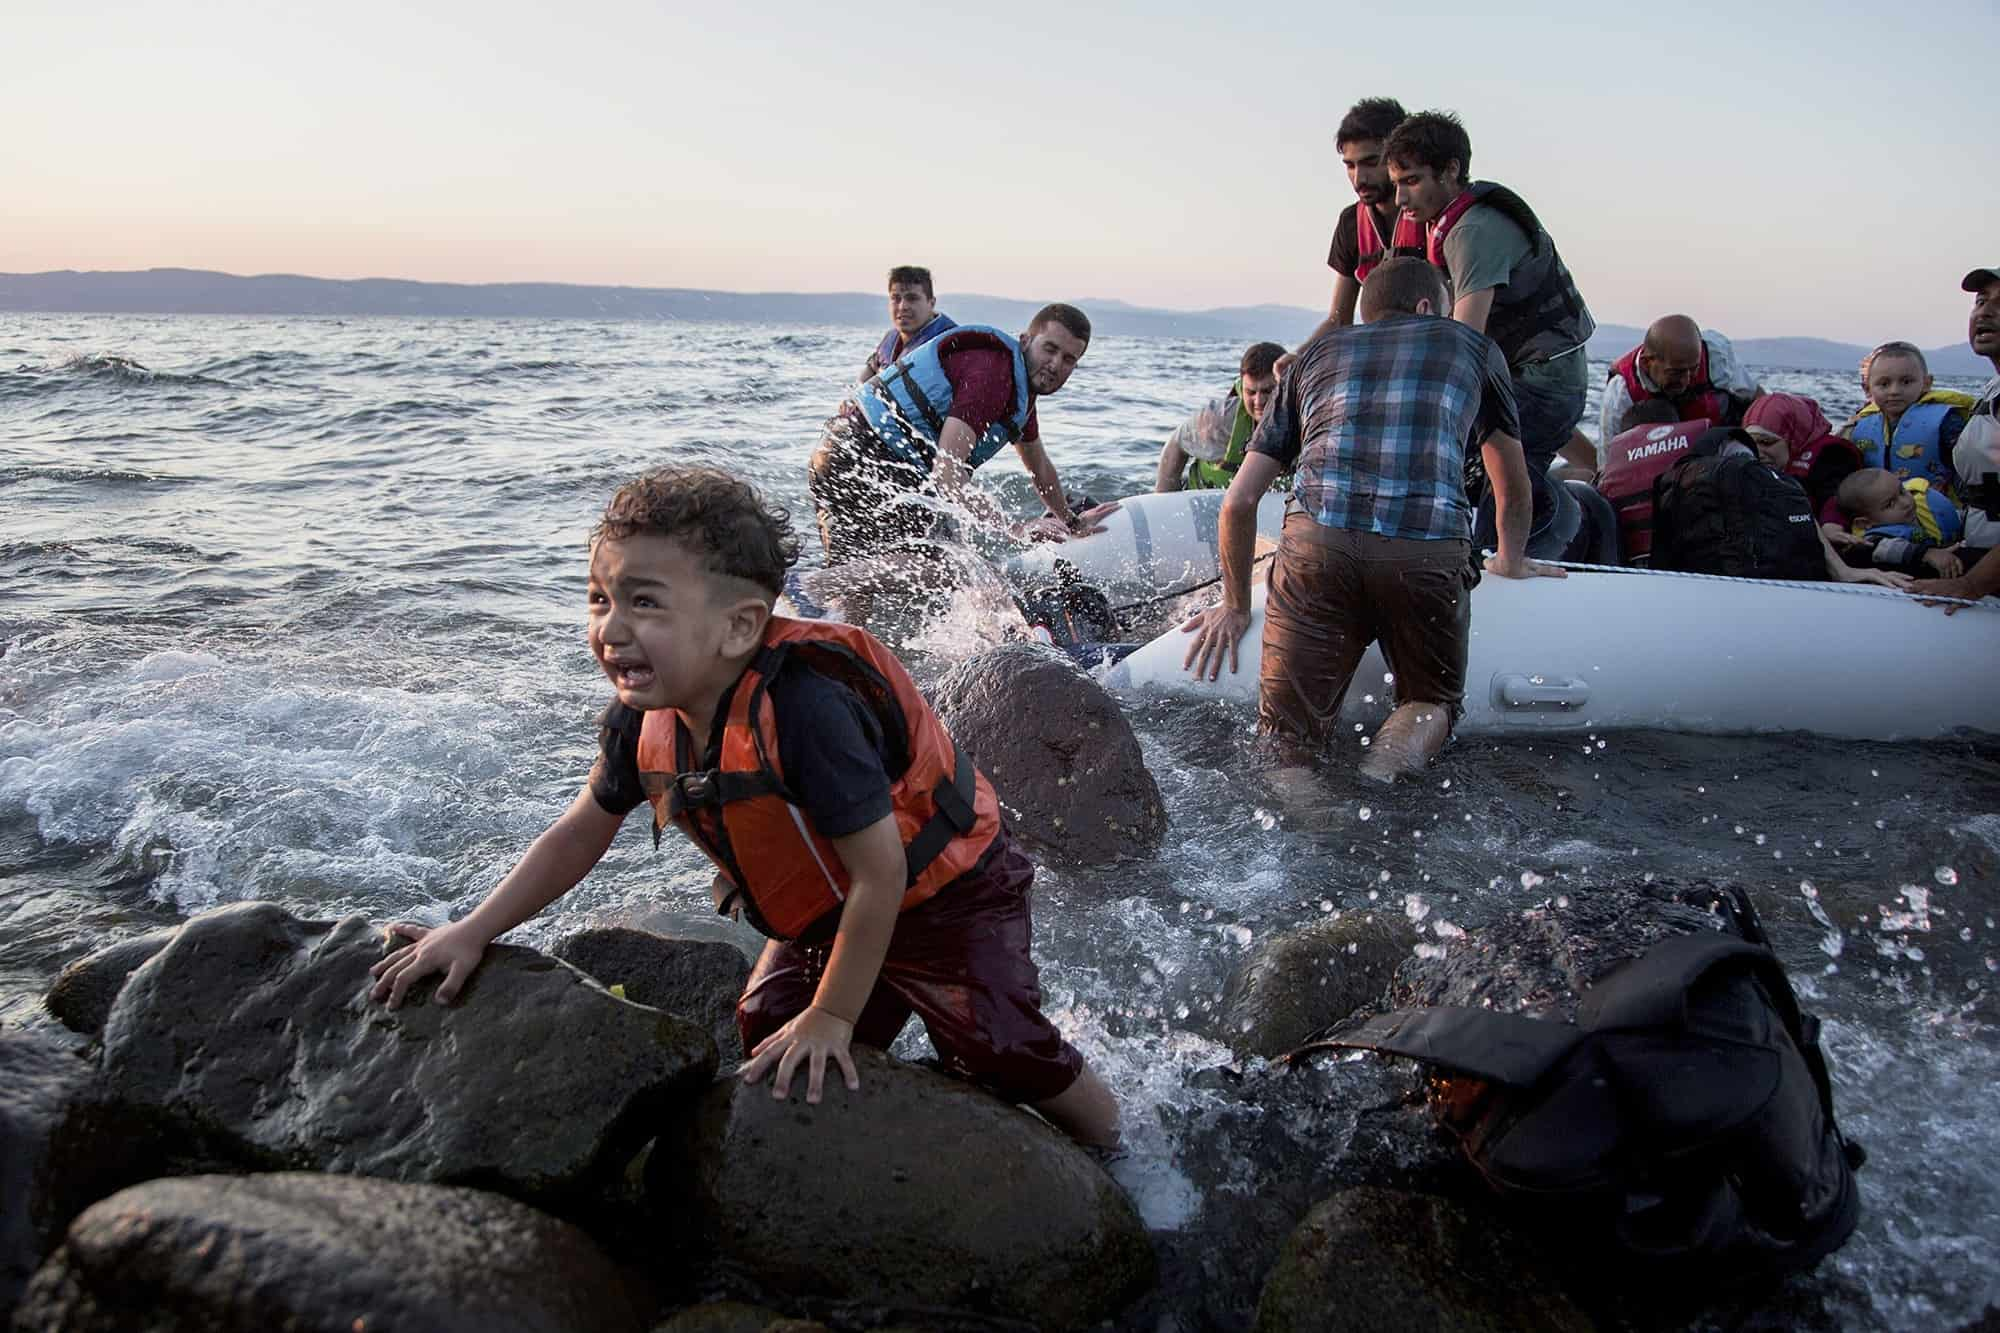 Syrian Refugees in Danger on Greek Island of Lesbos